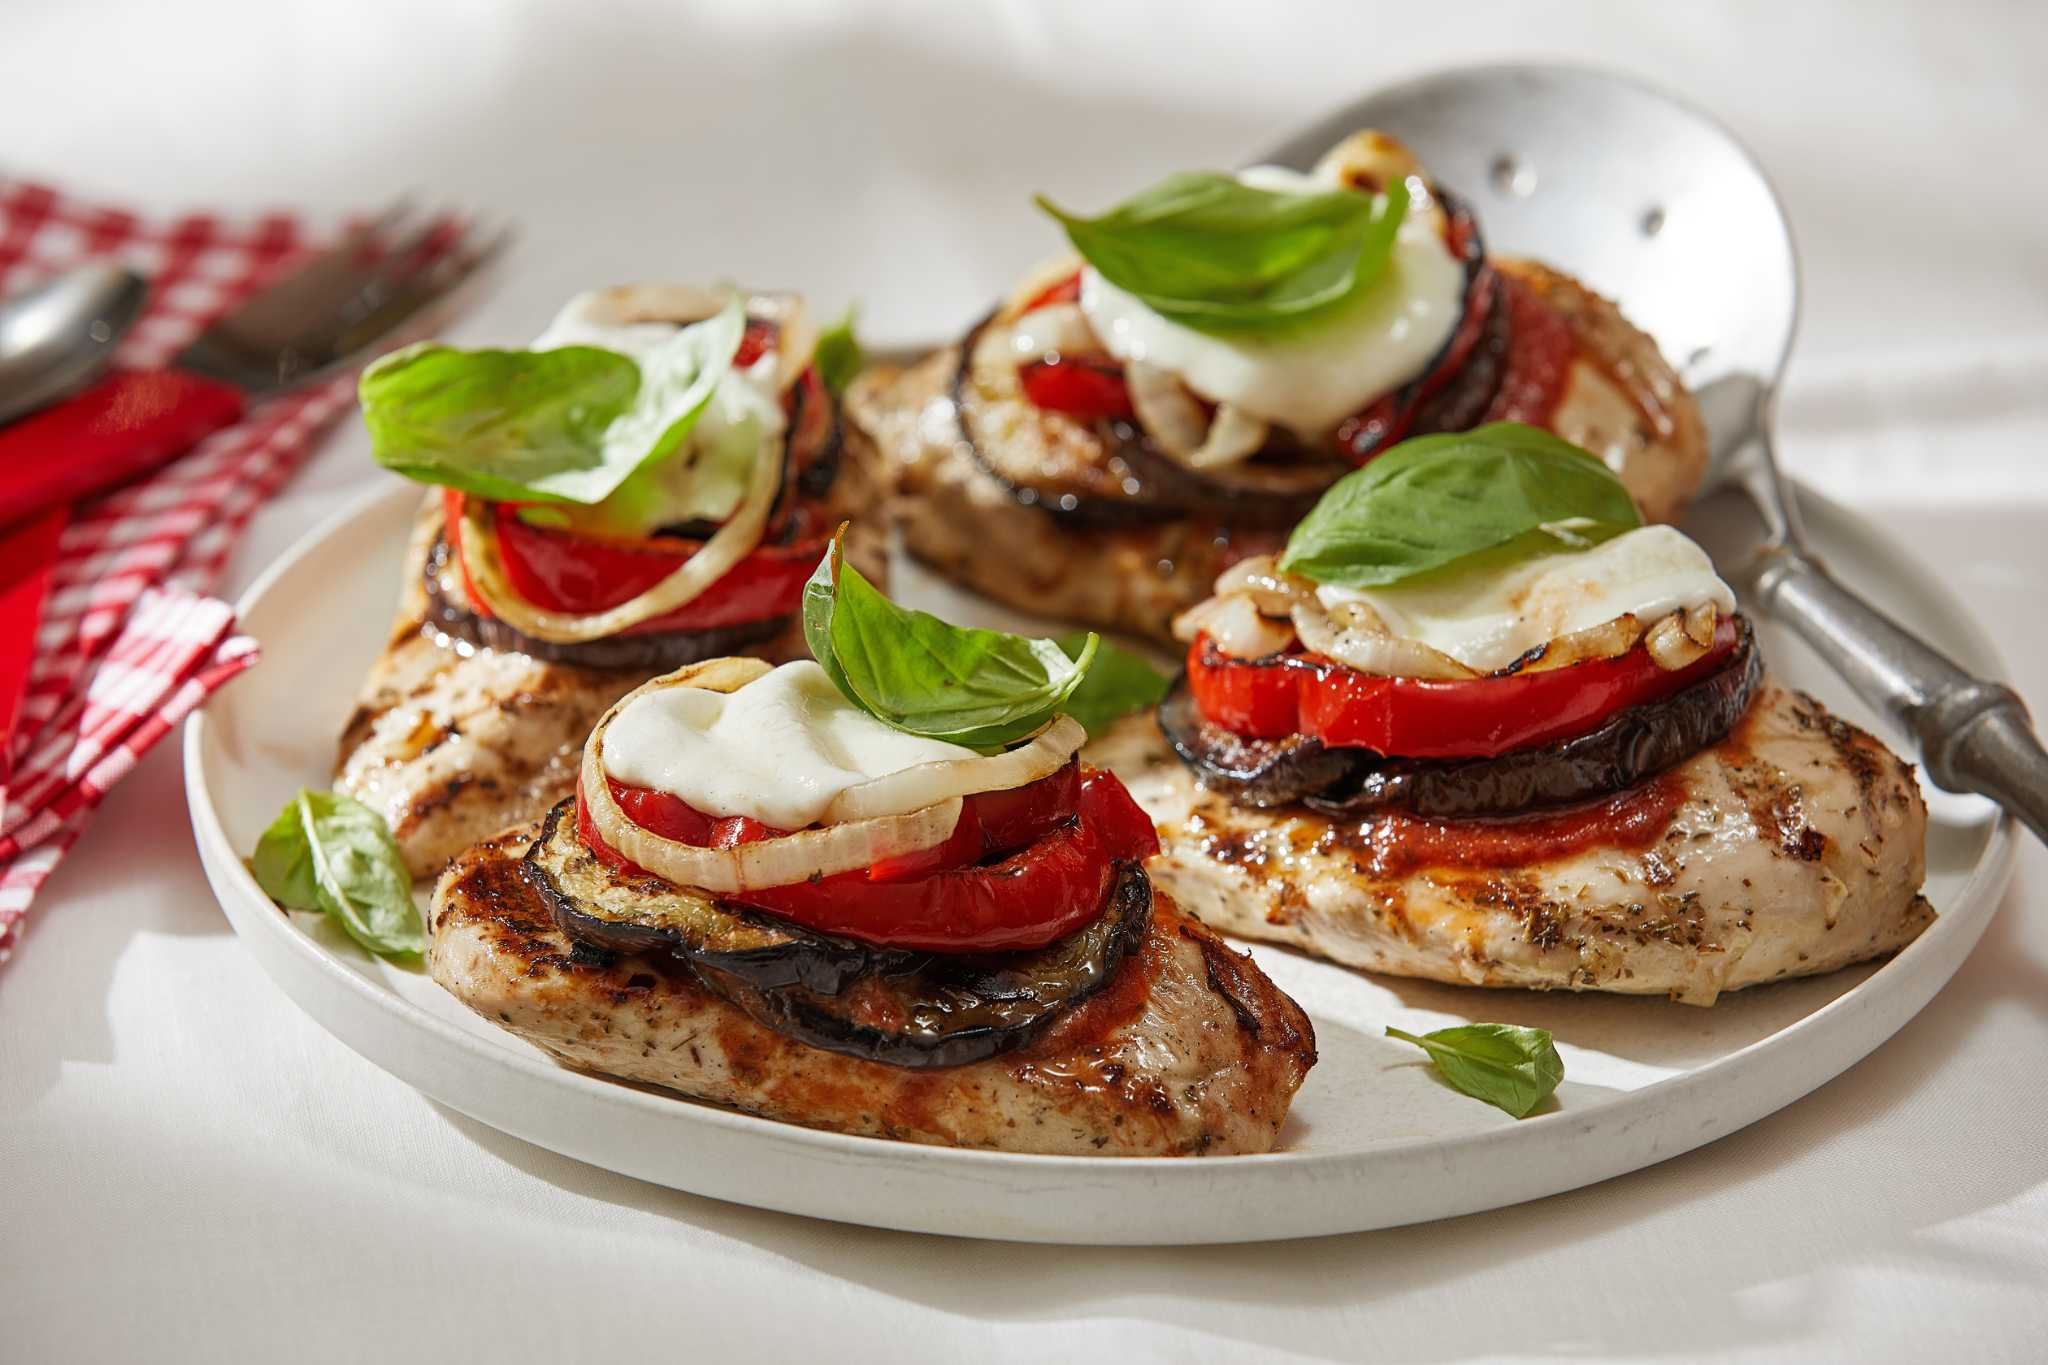 Mozzarella and marinara turn grilled chicken and vegetables into a summertime hit